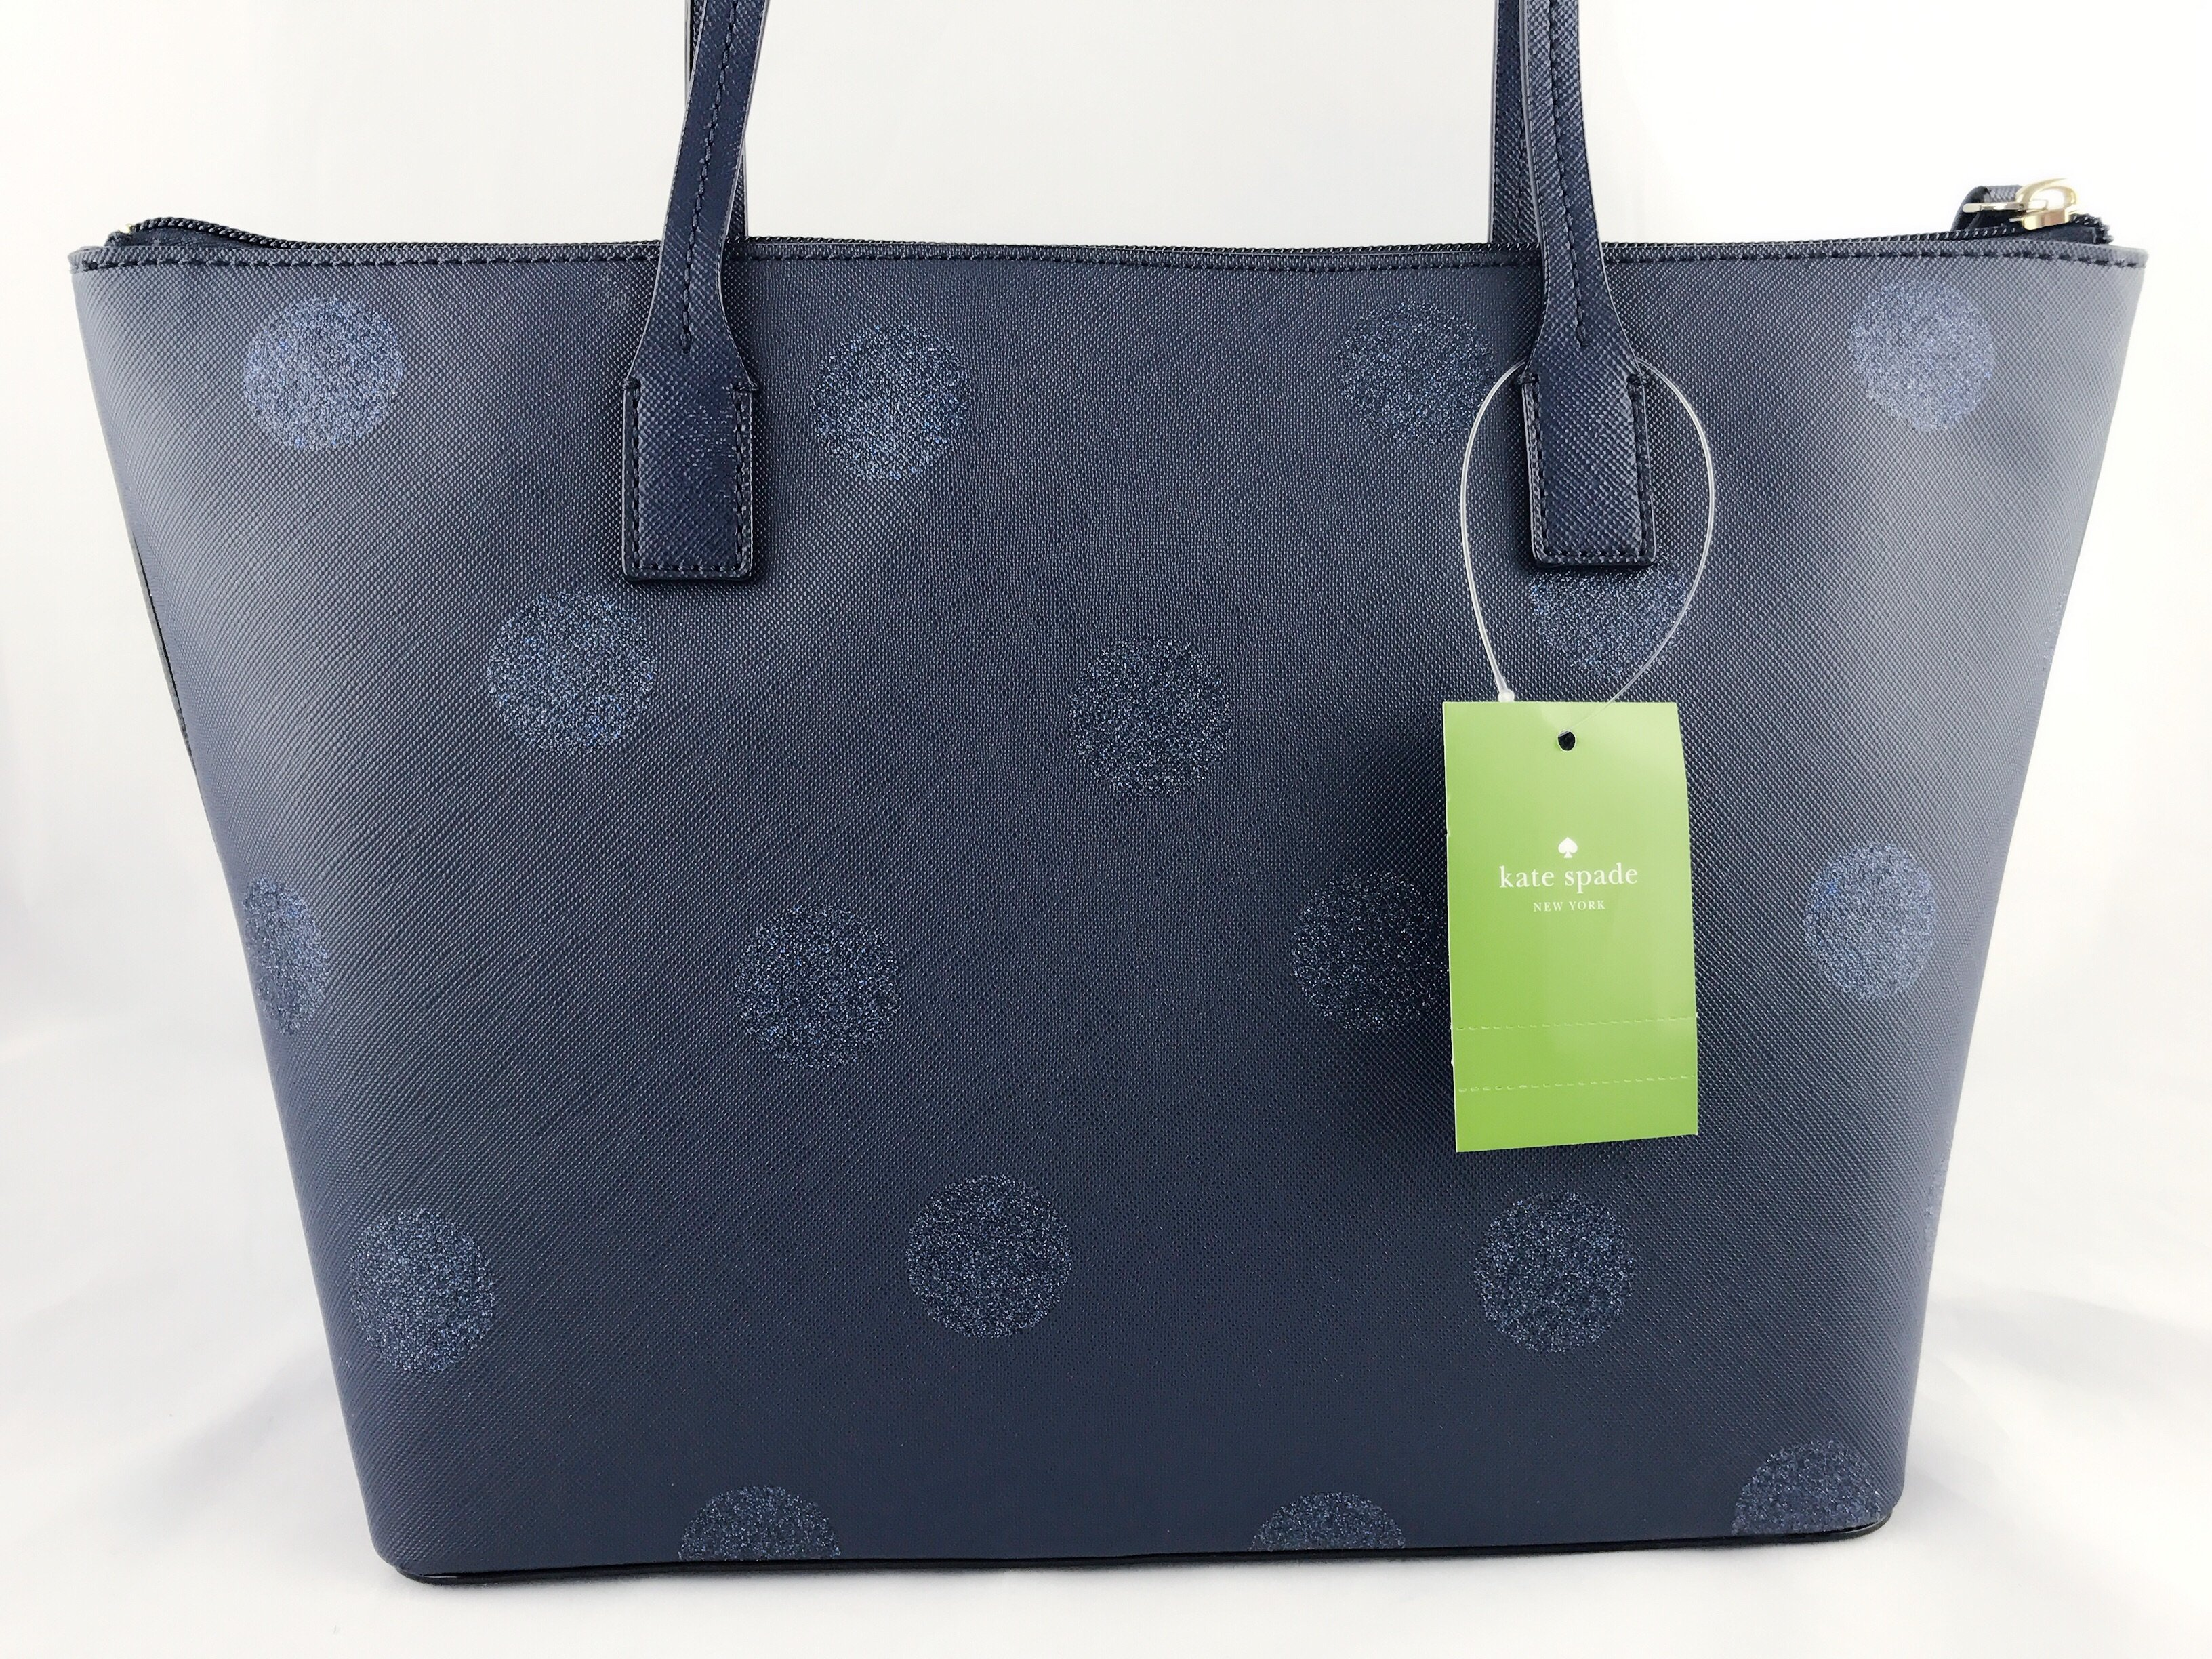 Kate spade haven lane hani small tote navy blue glitter polka dots kate spade haven lane hani small tote navy blue glitter polka dots handbag walmart junglespirit Image collections